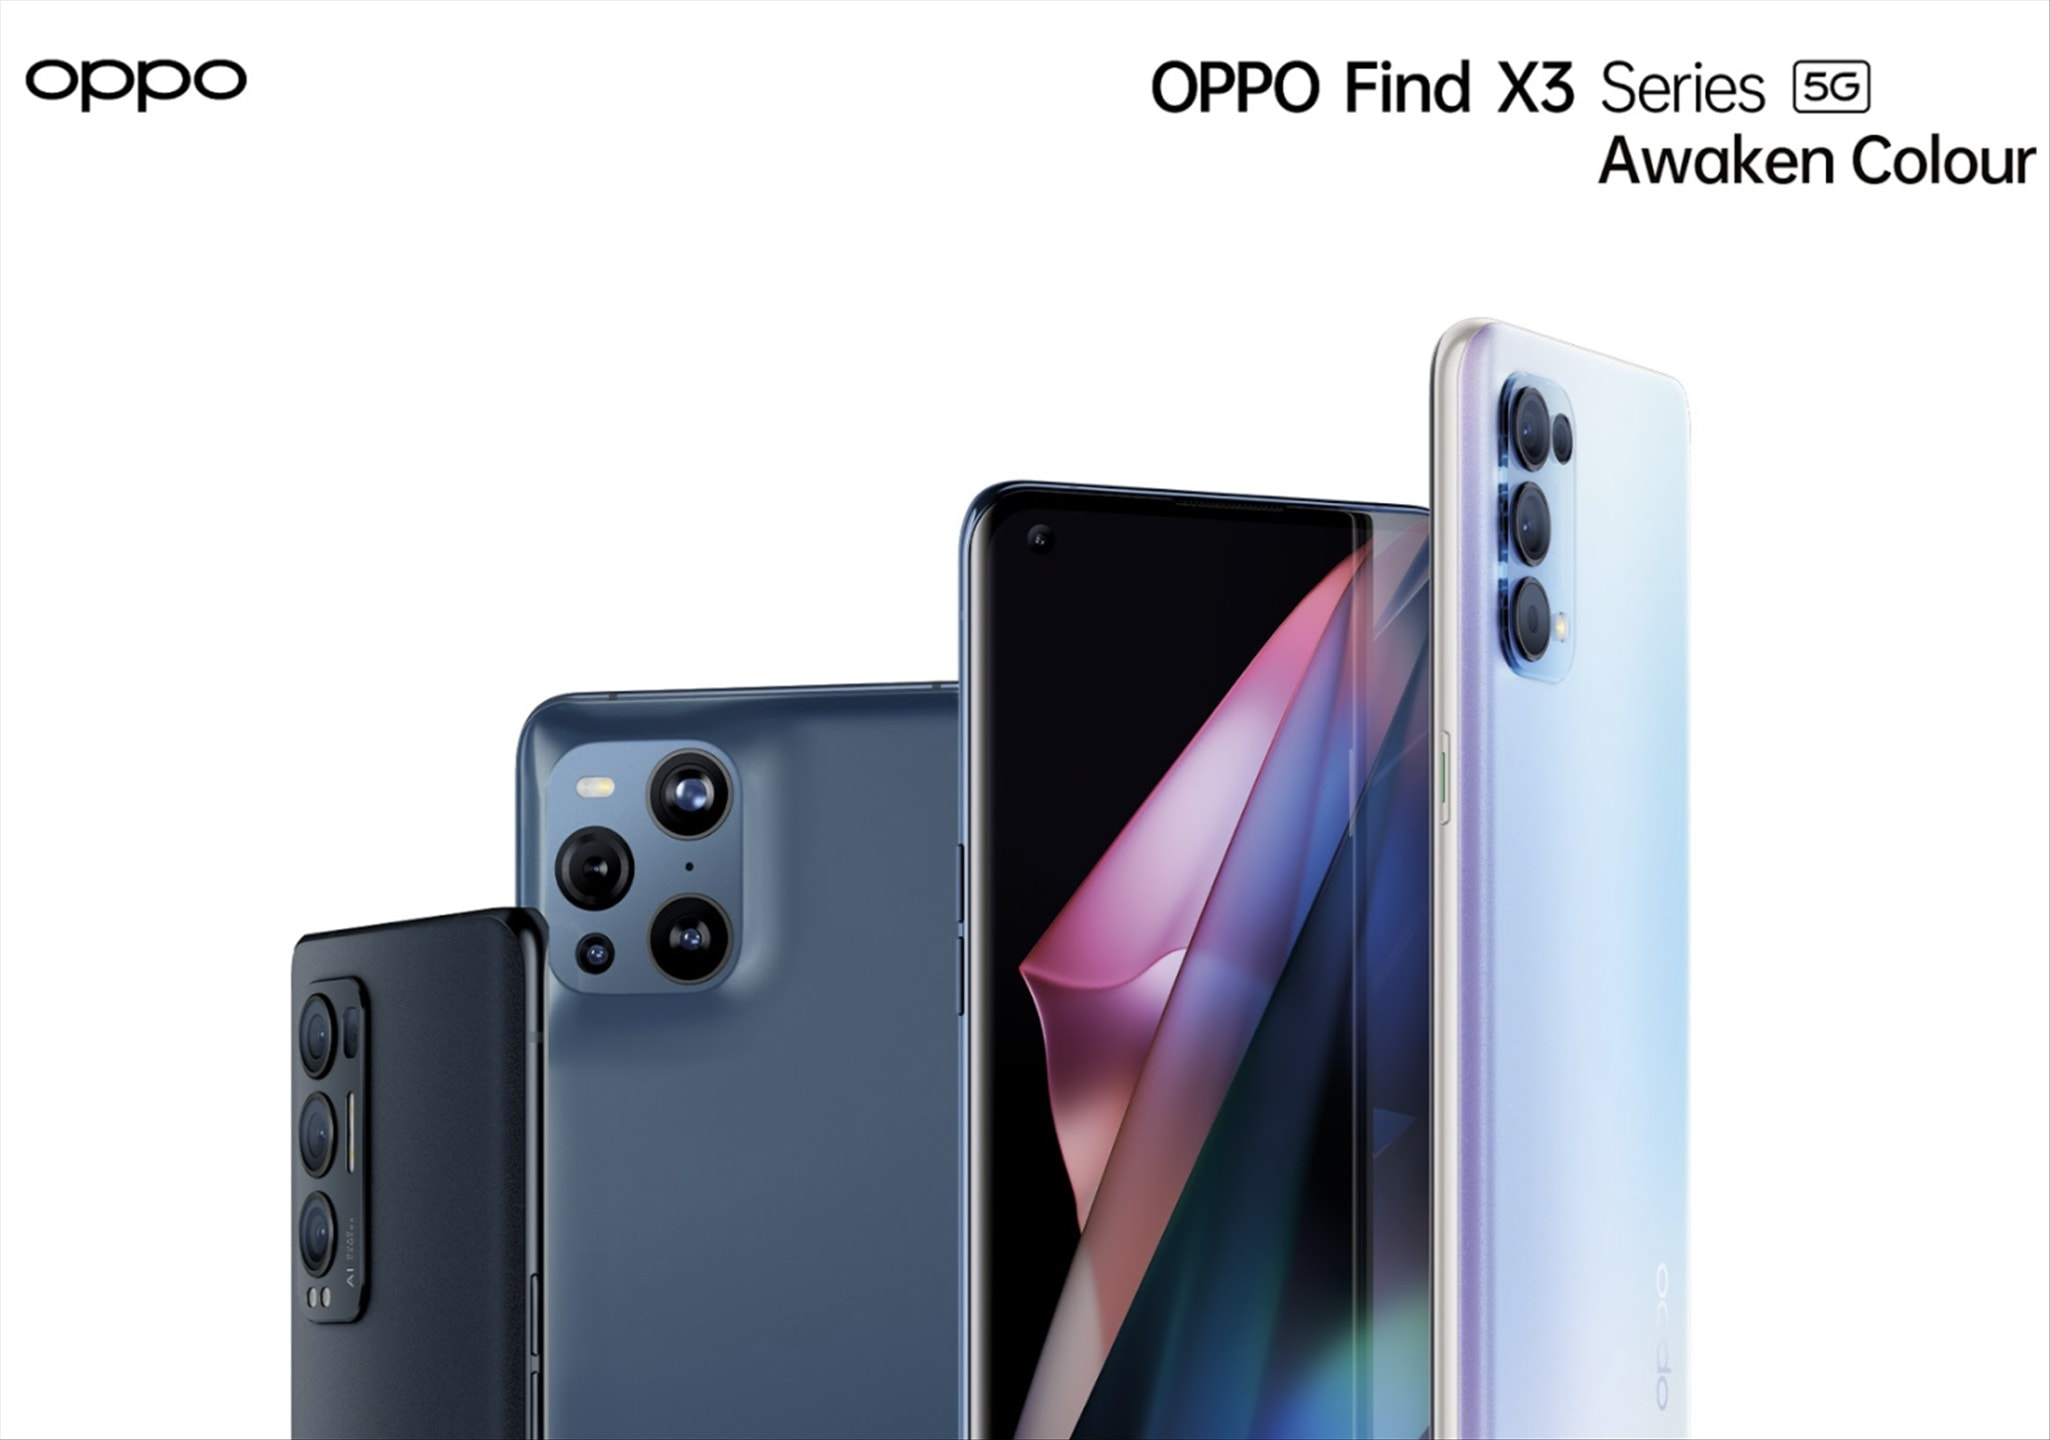 OPPO announces their new flagship series, OPPO Find X3 Series